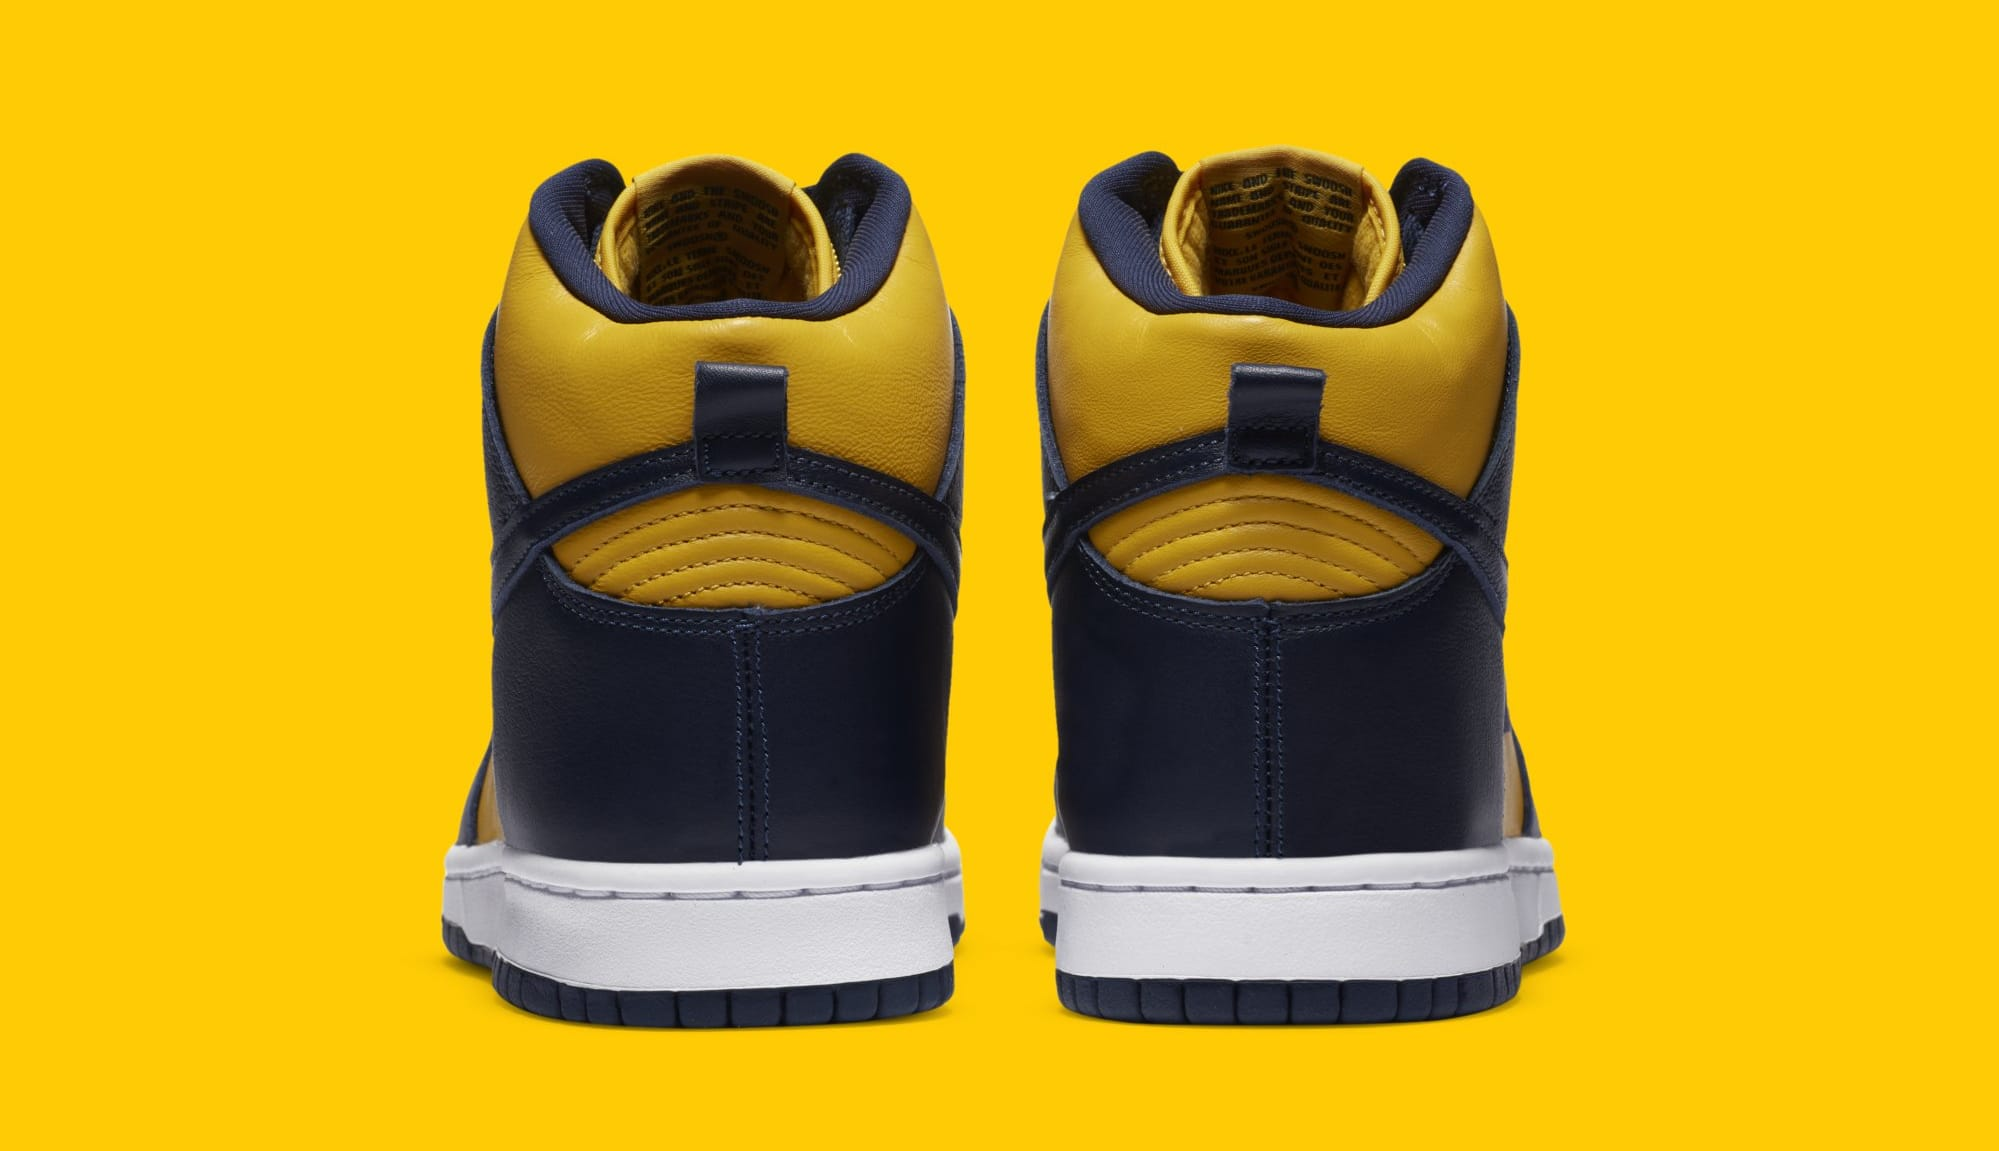 Nike Dunk High SP 'Michigan' CZ8149-700 Heel